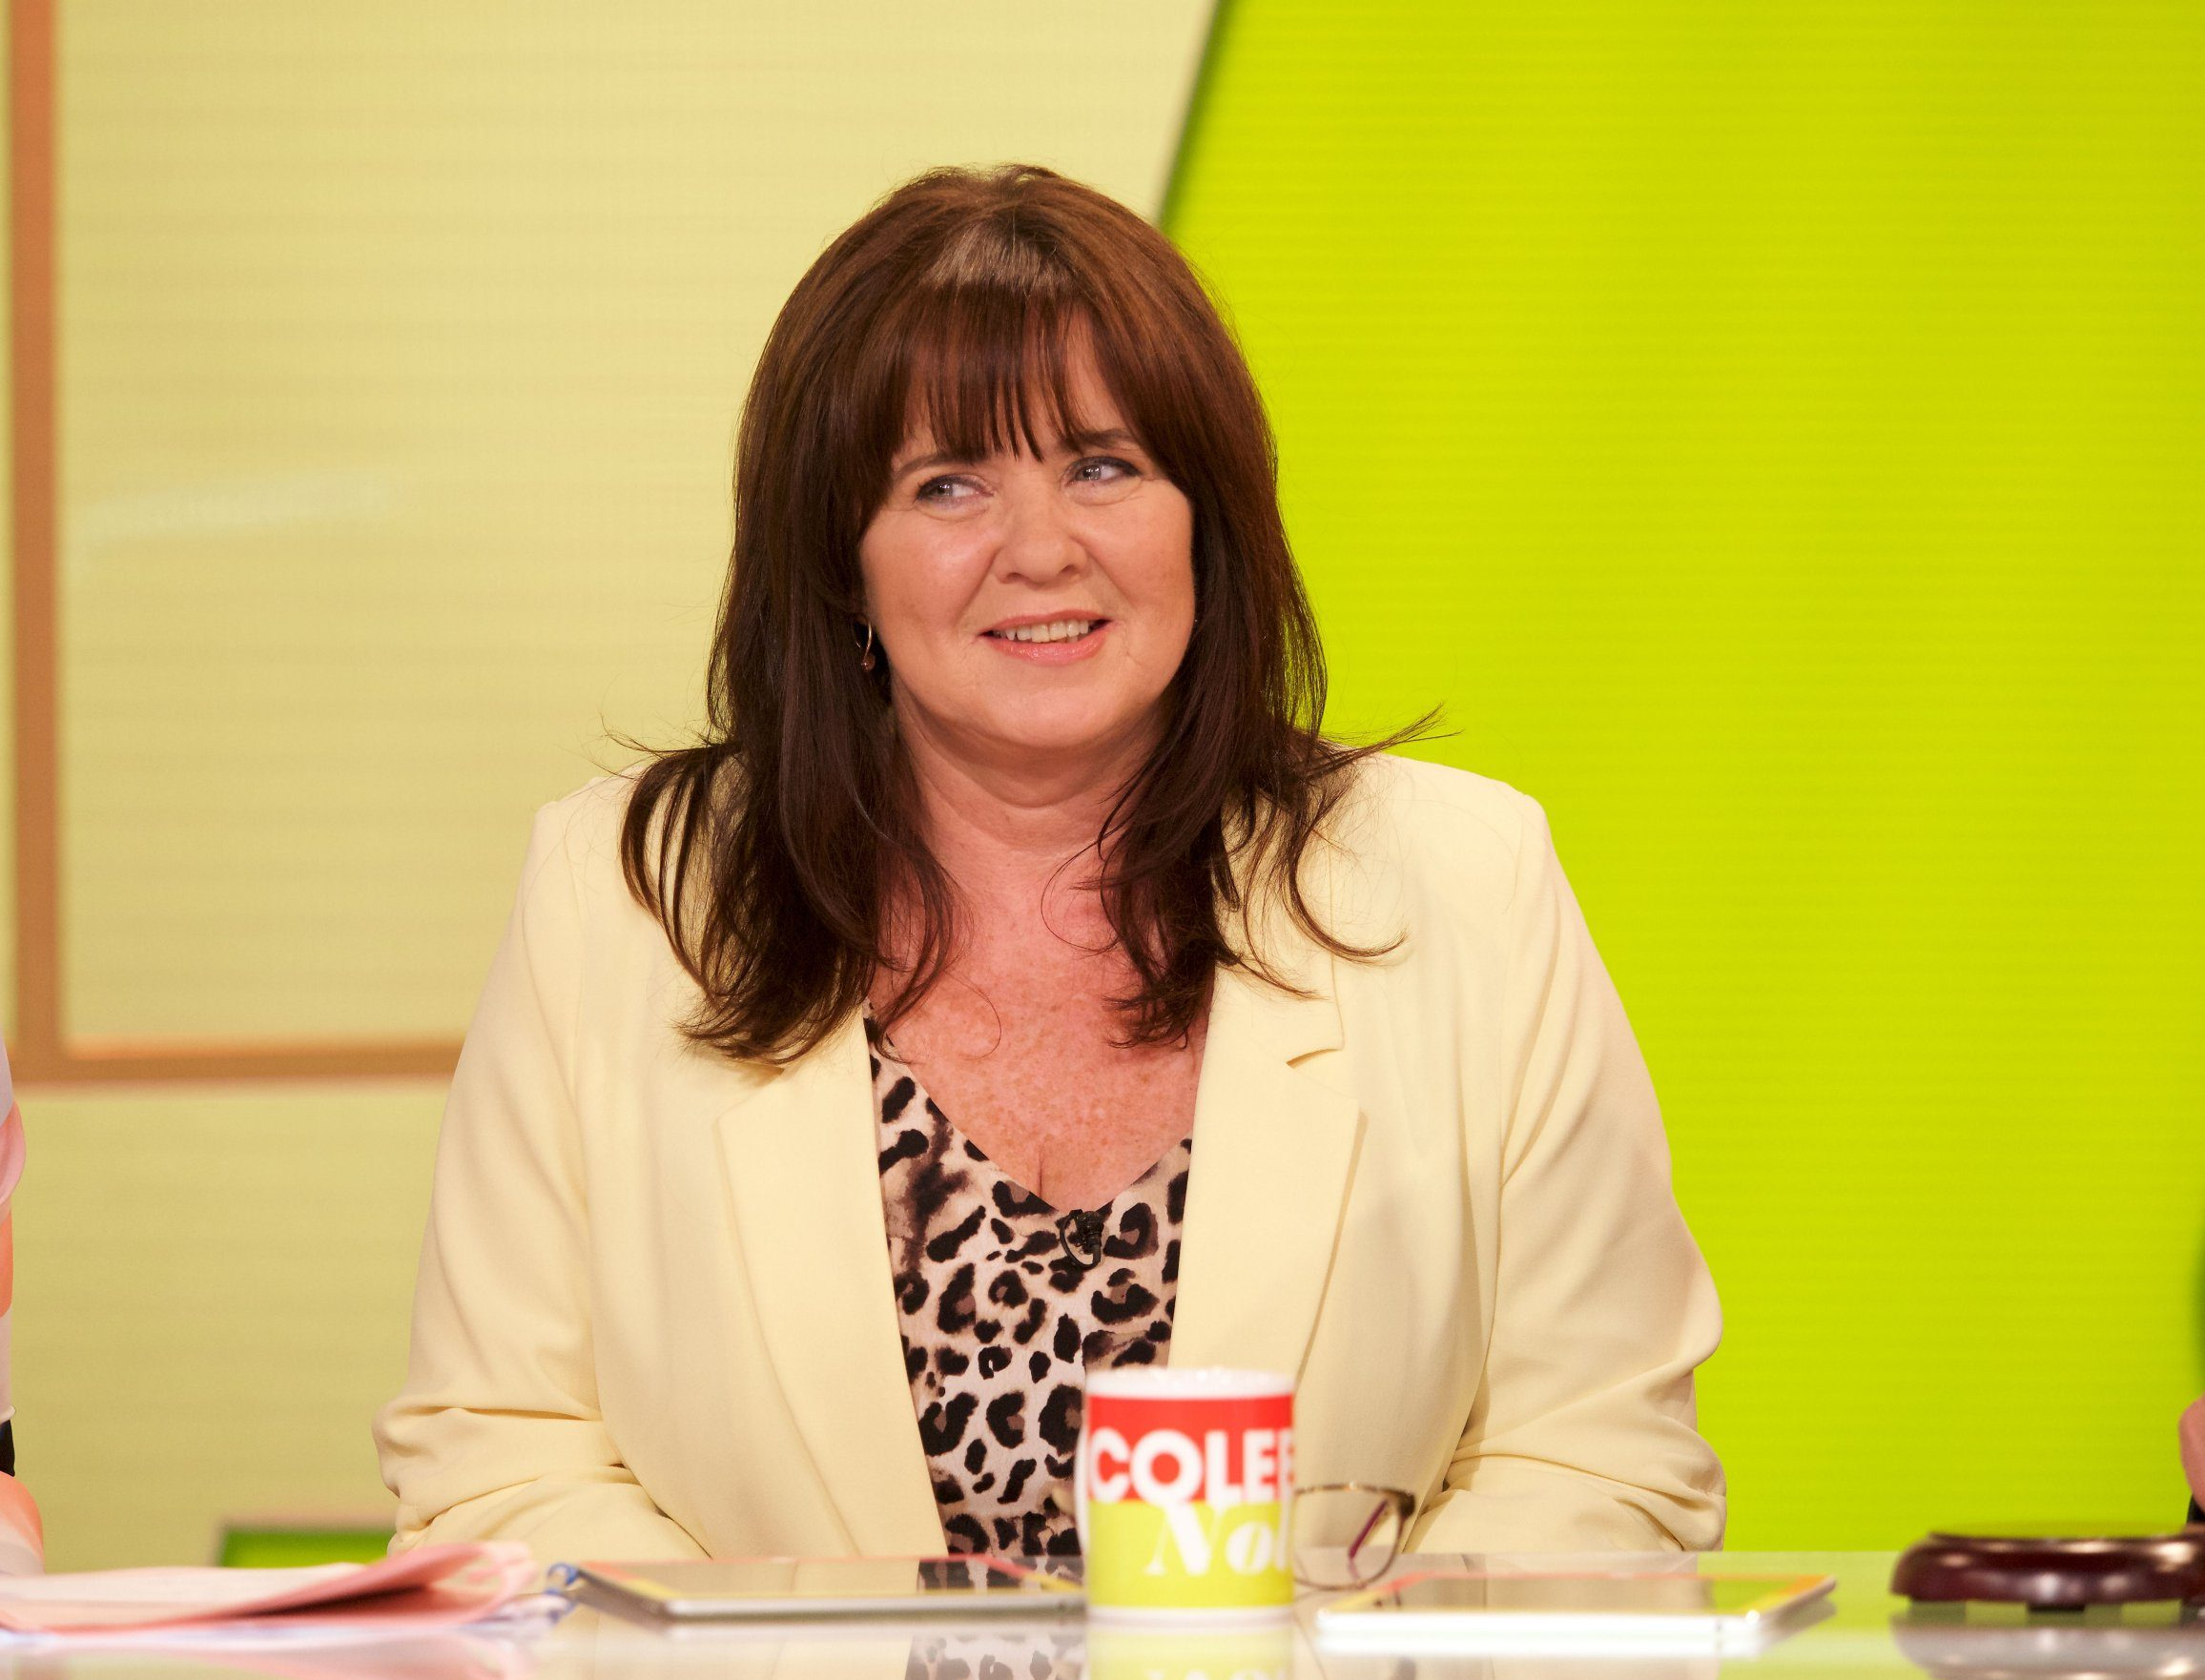 EDITORIAL USE ONLY. NO MERCHANDISING Mandatory Credit: Photo by Ken McKay/ITV/REX (9826674c) Coleen Nolan 'Loose Women' TV show, London, UK - 29 Aug 2018